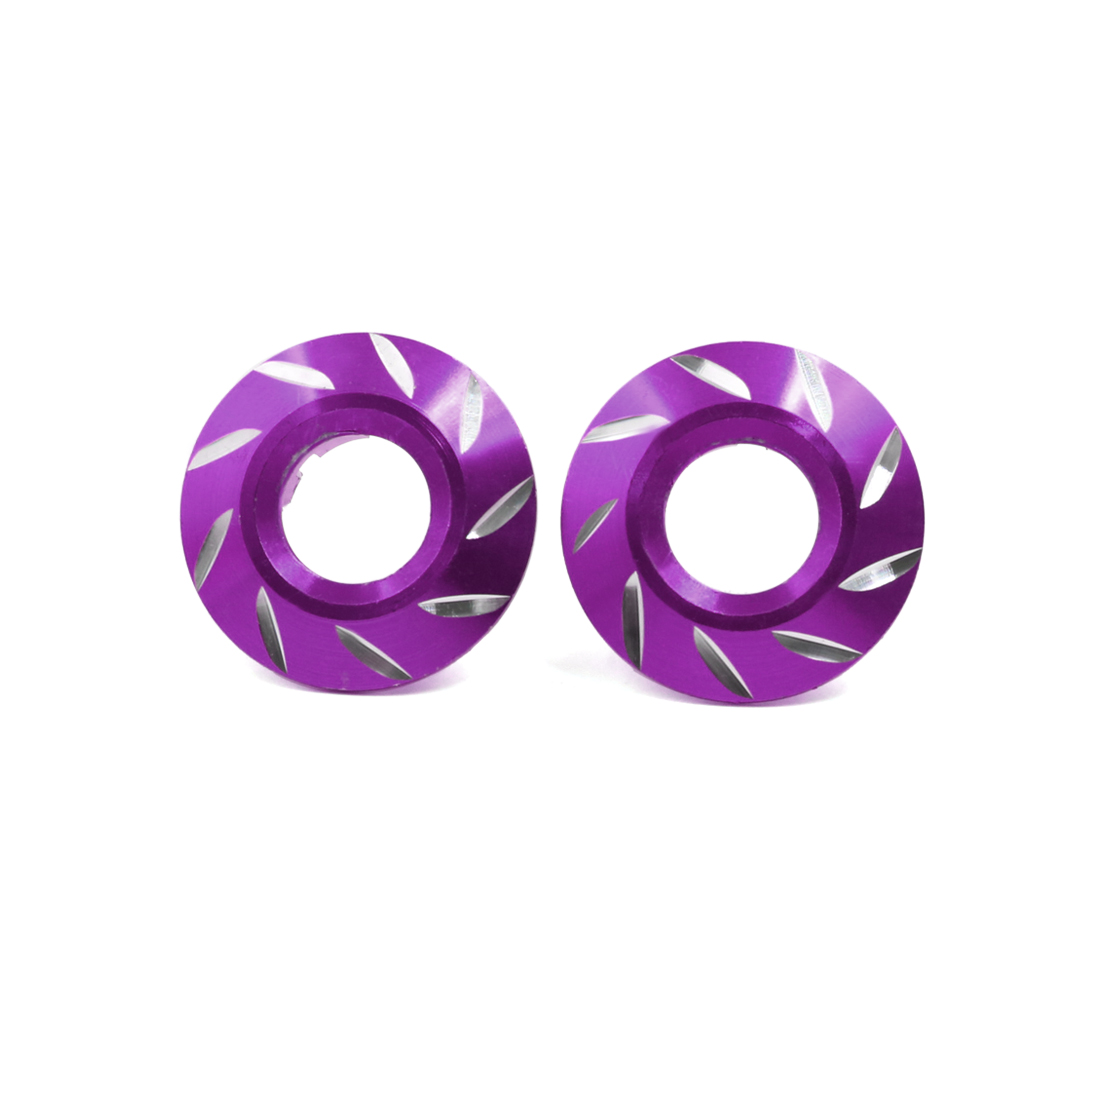 2 Pcs Purple Metal Flower Style Engine Oil Filler Fuel Cover Cap for Motorcycle